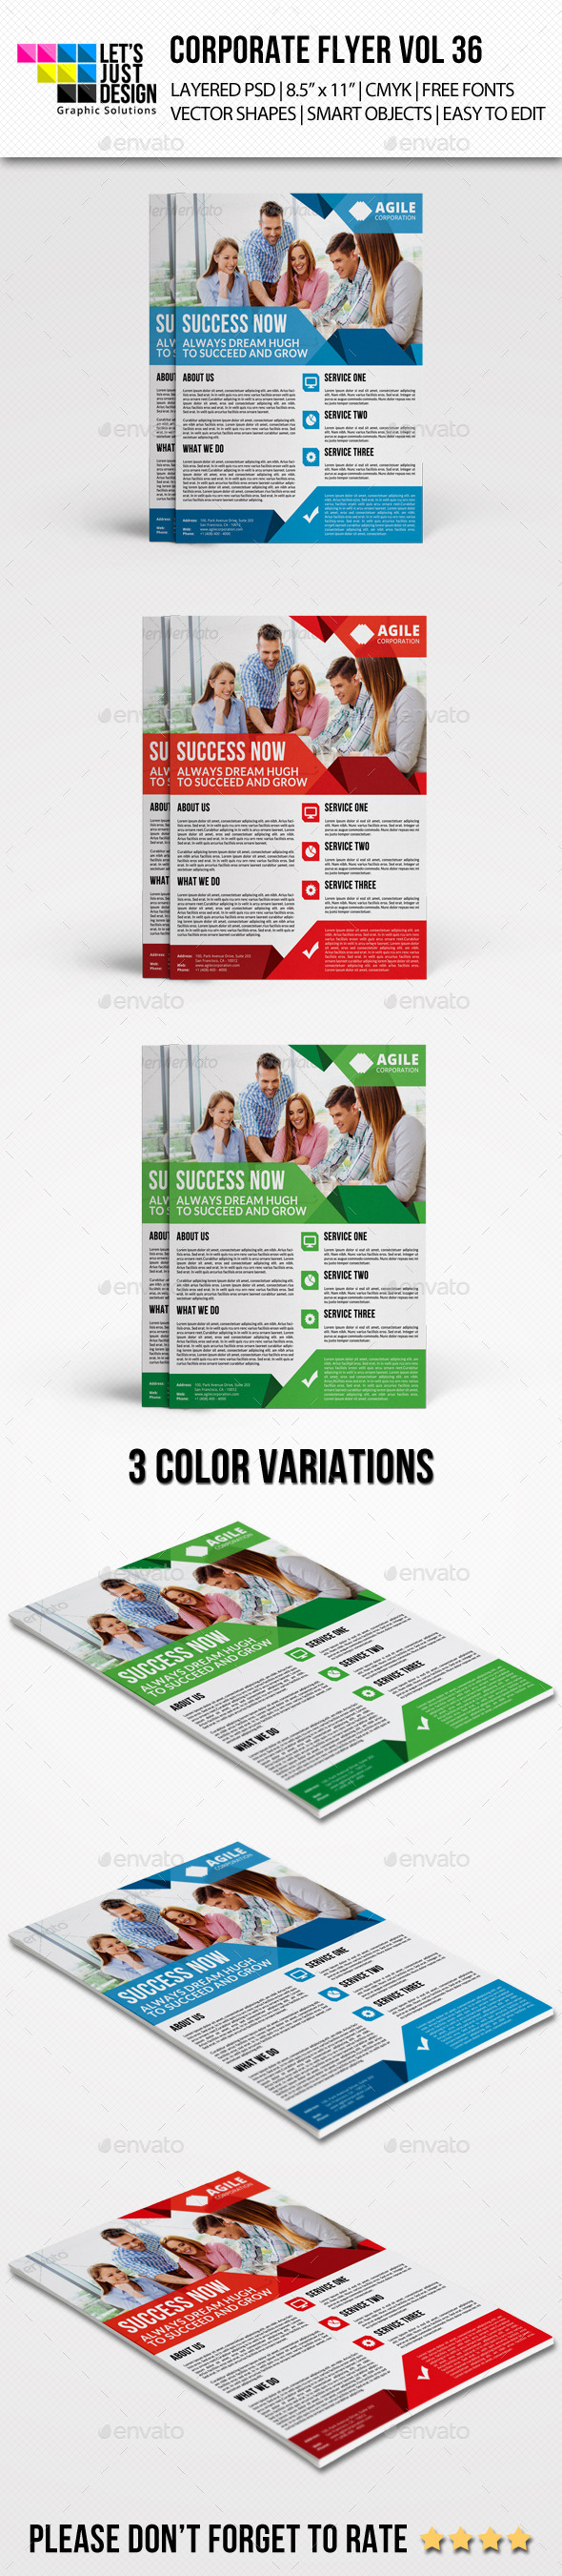 Corporate Flyer Template Vol 36 - Corporate Flyers